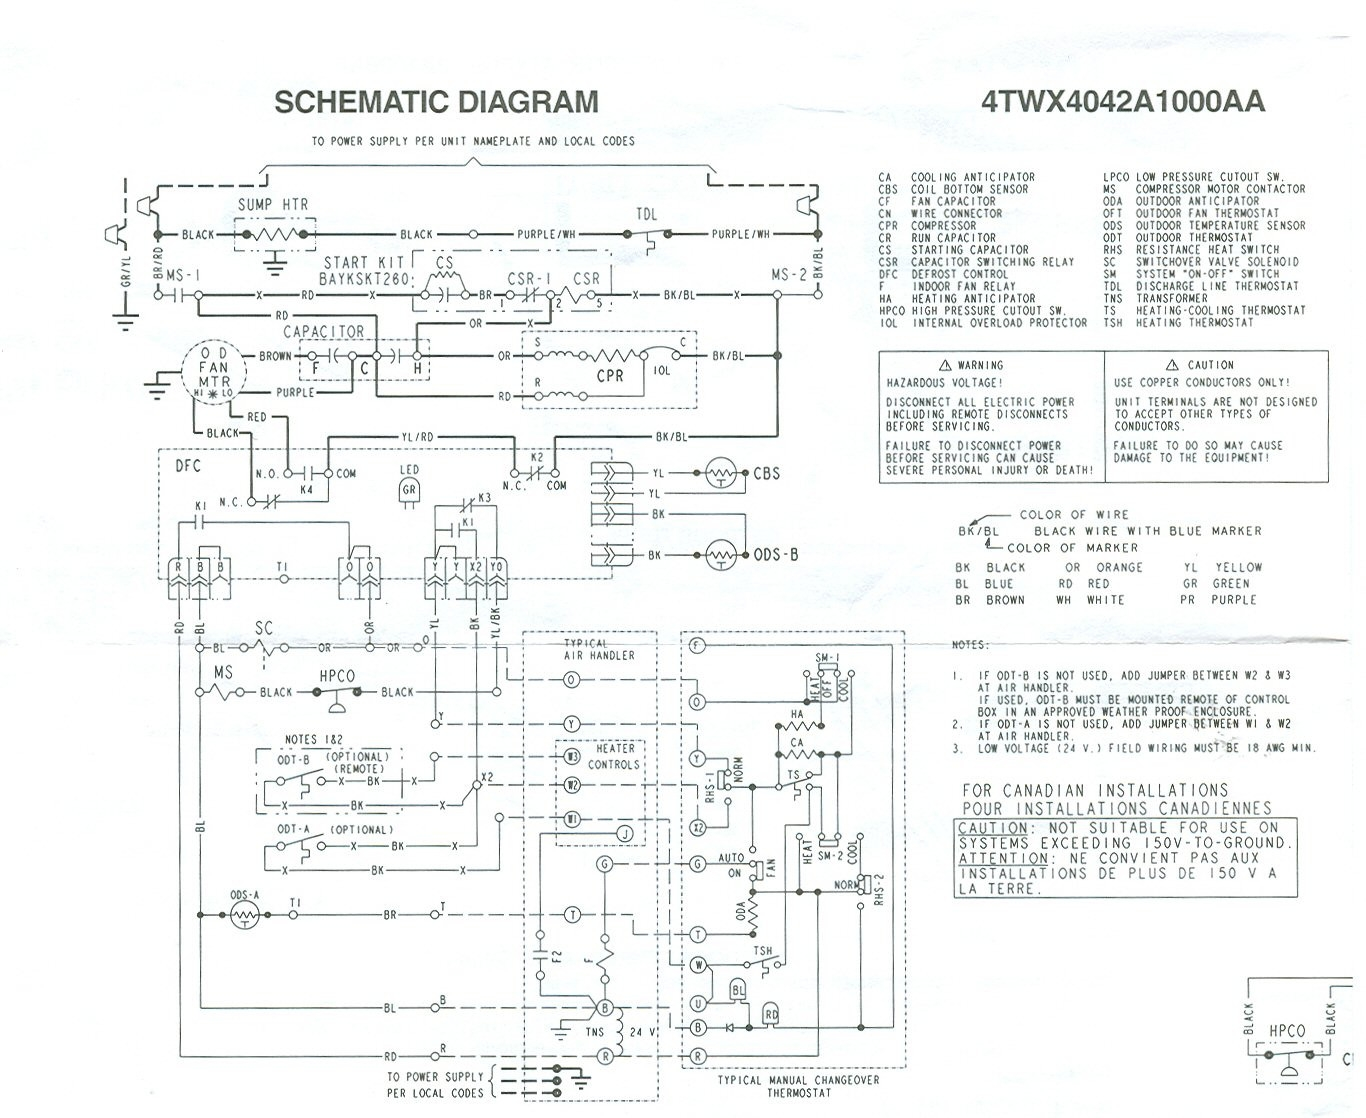 Trane Xr80 Wiring Diagram